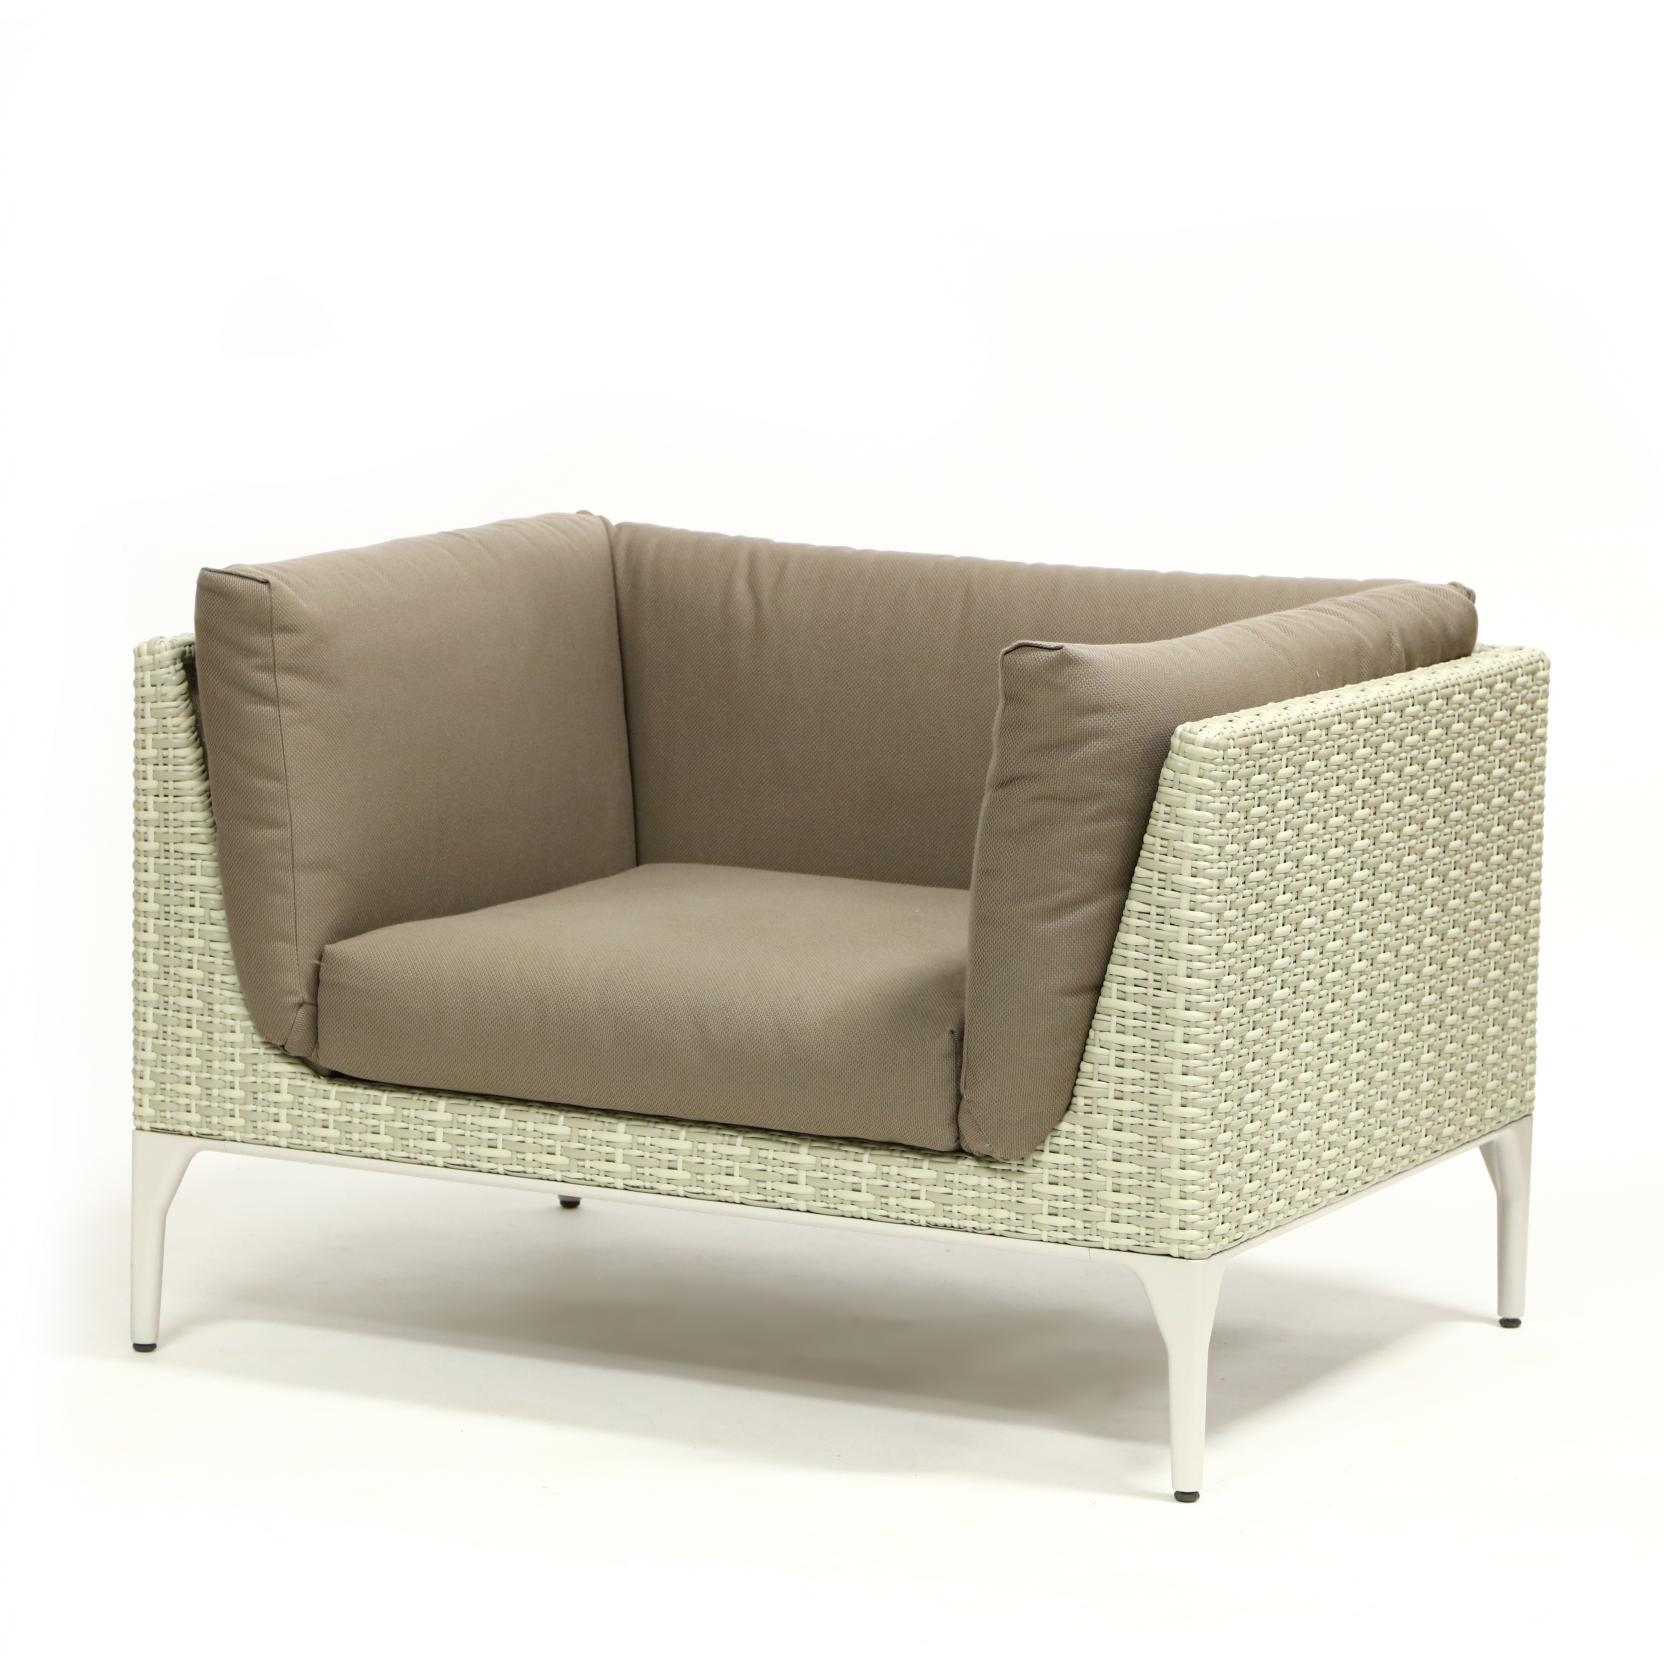 dedon-mu-collection-club-chair-by-toan-nguyen